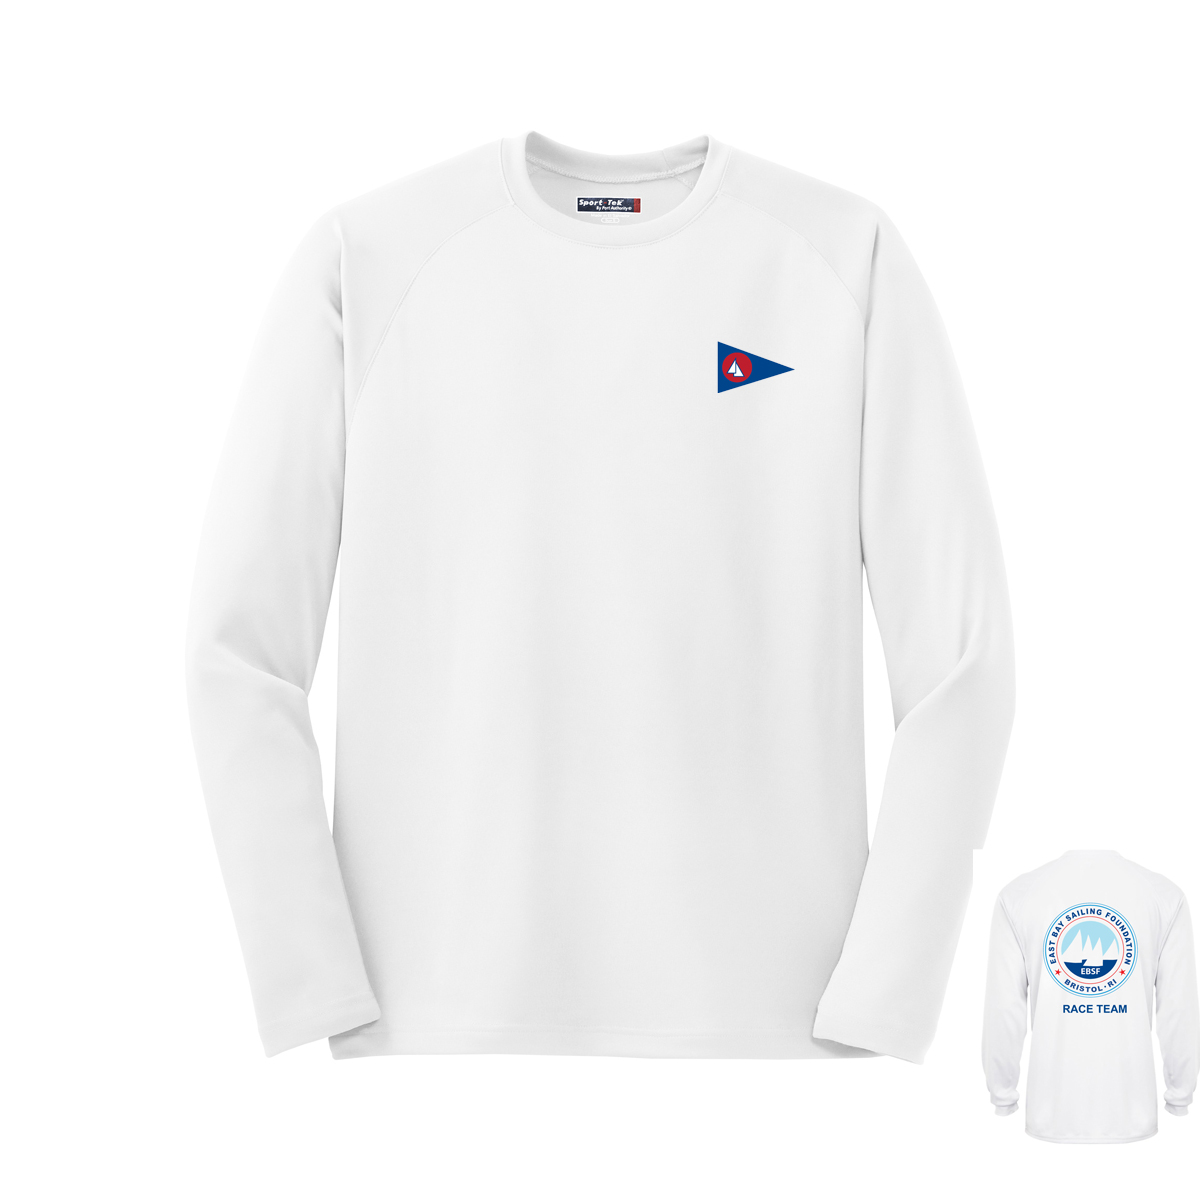 East Bay Sailing Foundation - Men's Race Team Long Sleeve Tech Tee